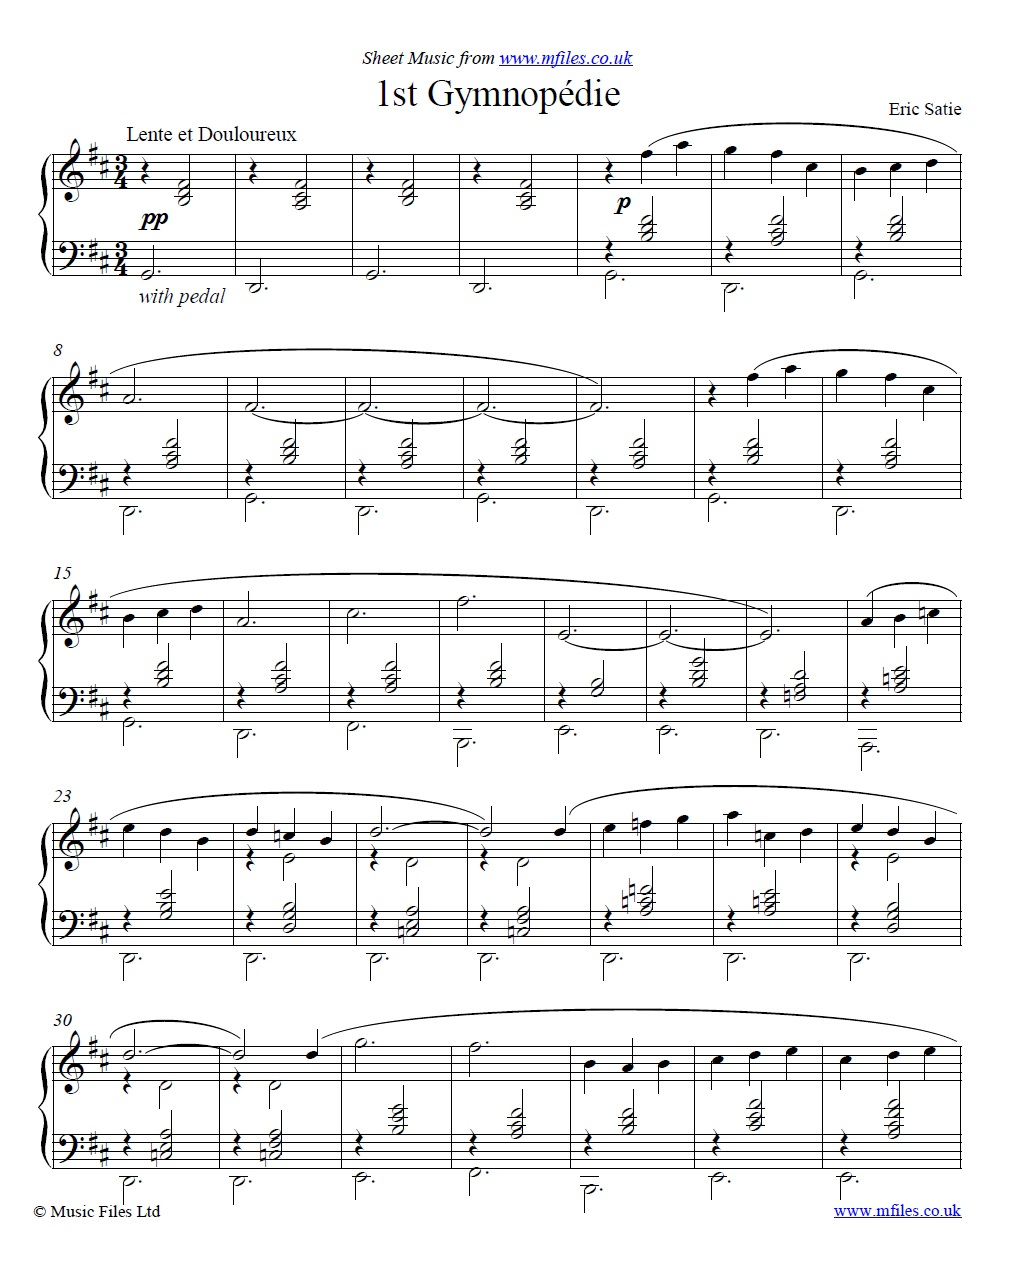 Satie's Gymnopedie No.1 for piano - sheet music 1st page